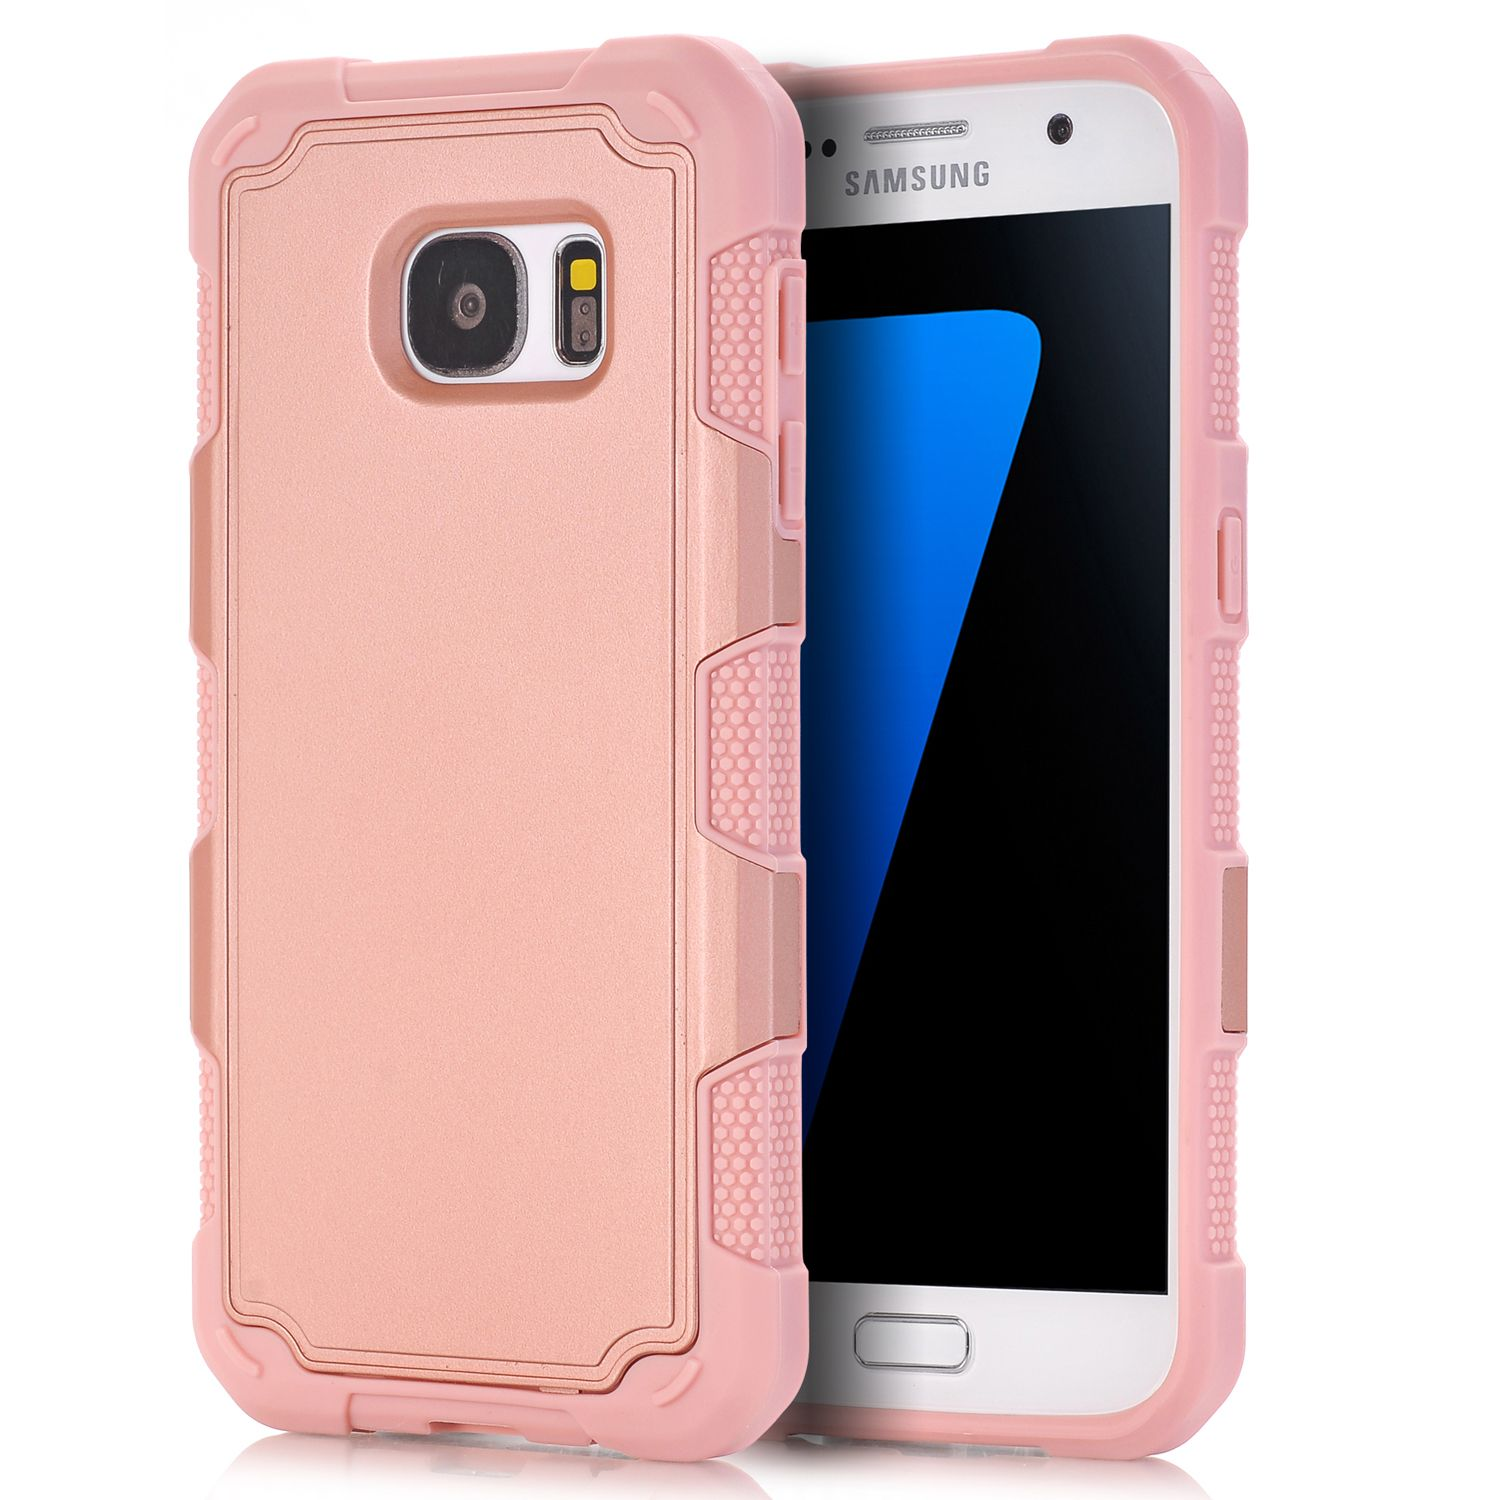 For Samsung Galaxy S7 Case Shockproof Series Drop Protection Hybrid Dual Layer Armor Defender Protective Cover For Galaxy S7